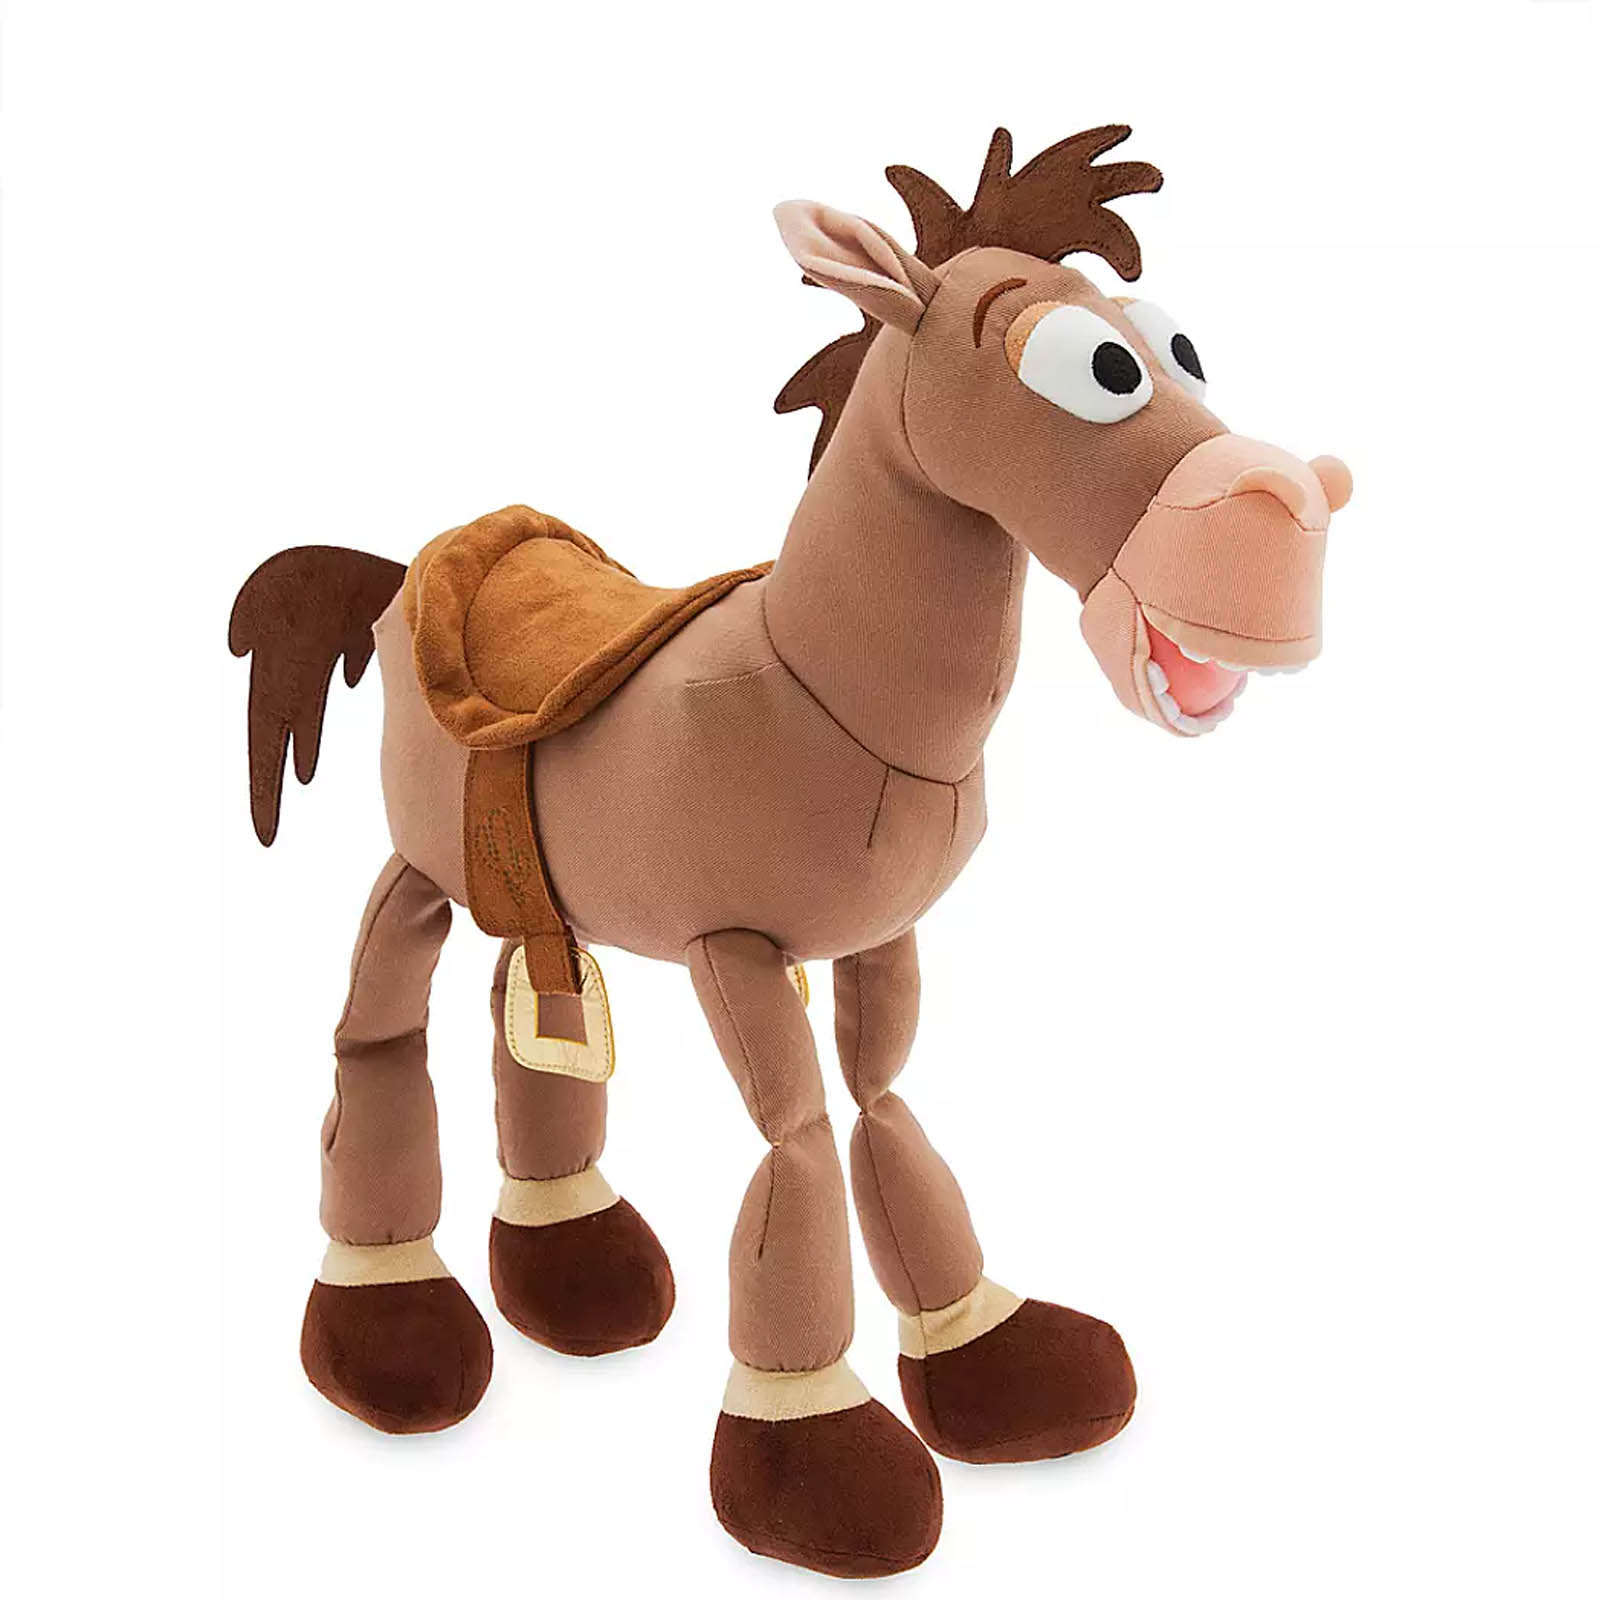 Disney Toy Story 4 Large Plush Bullseye Horse Soft Toy 43cm